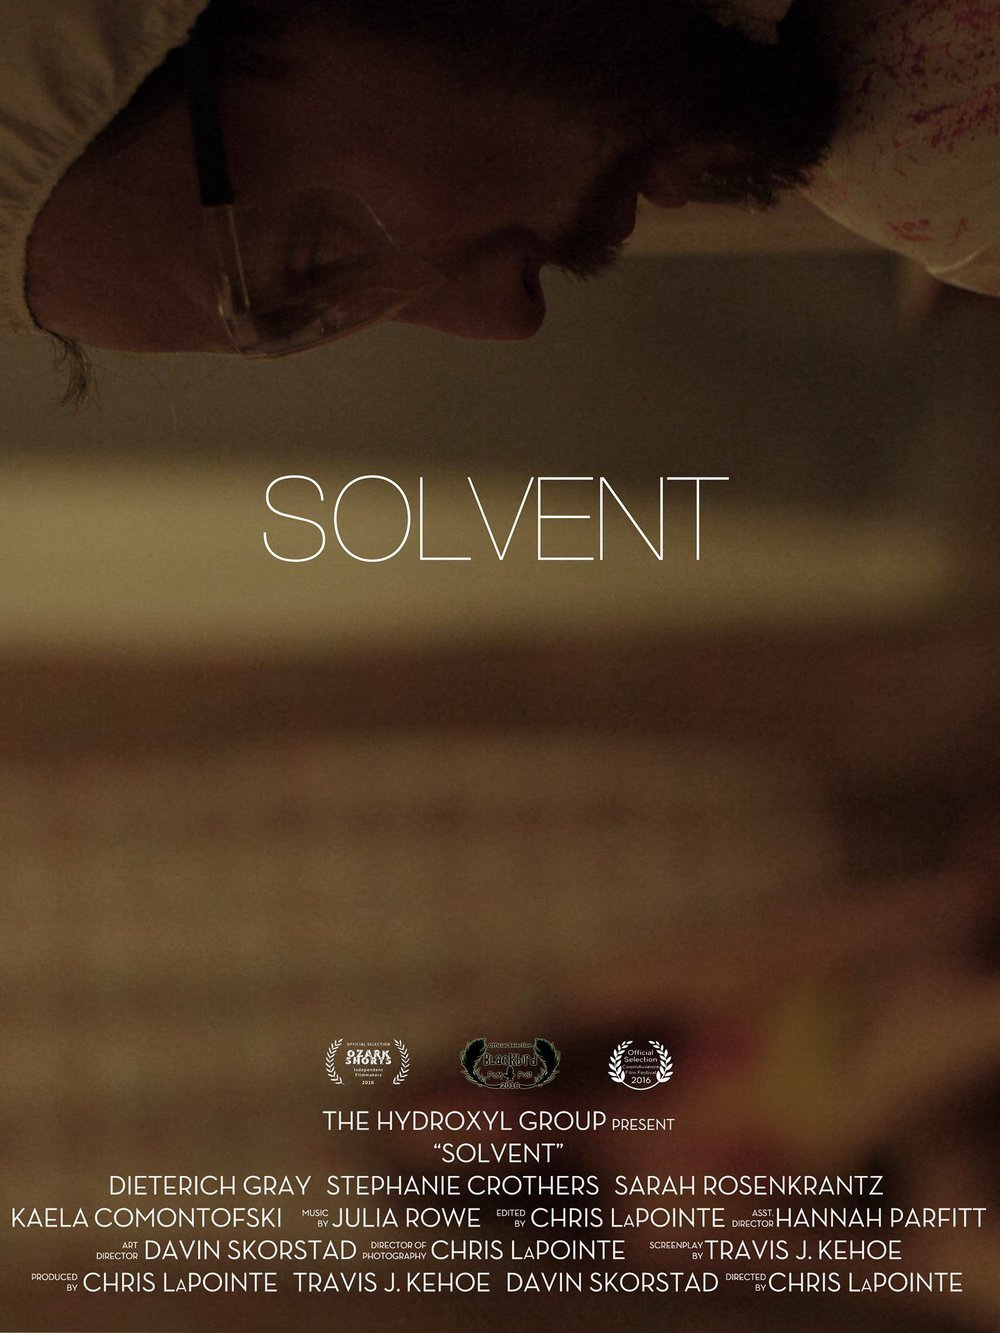 'Solvent' screens as officIal selectIon at festivals  - Kaela plays Trish in Solvent, an official selection at Ozark Shorts, Blackbird, and CinemAvvenire Film Festivals.CLICK TO WATCH